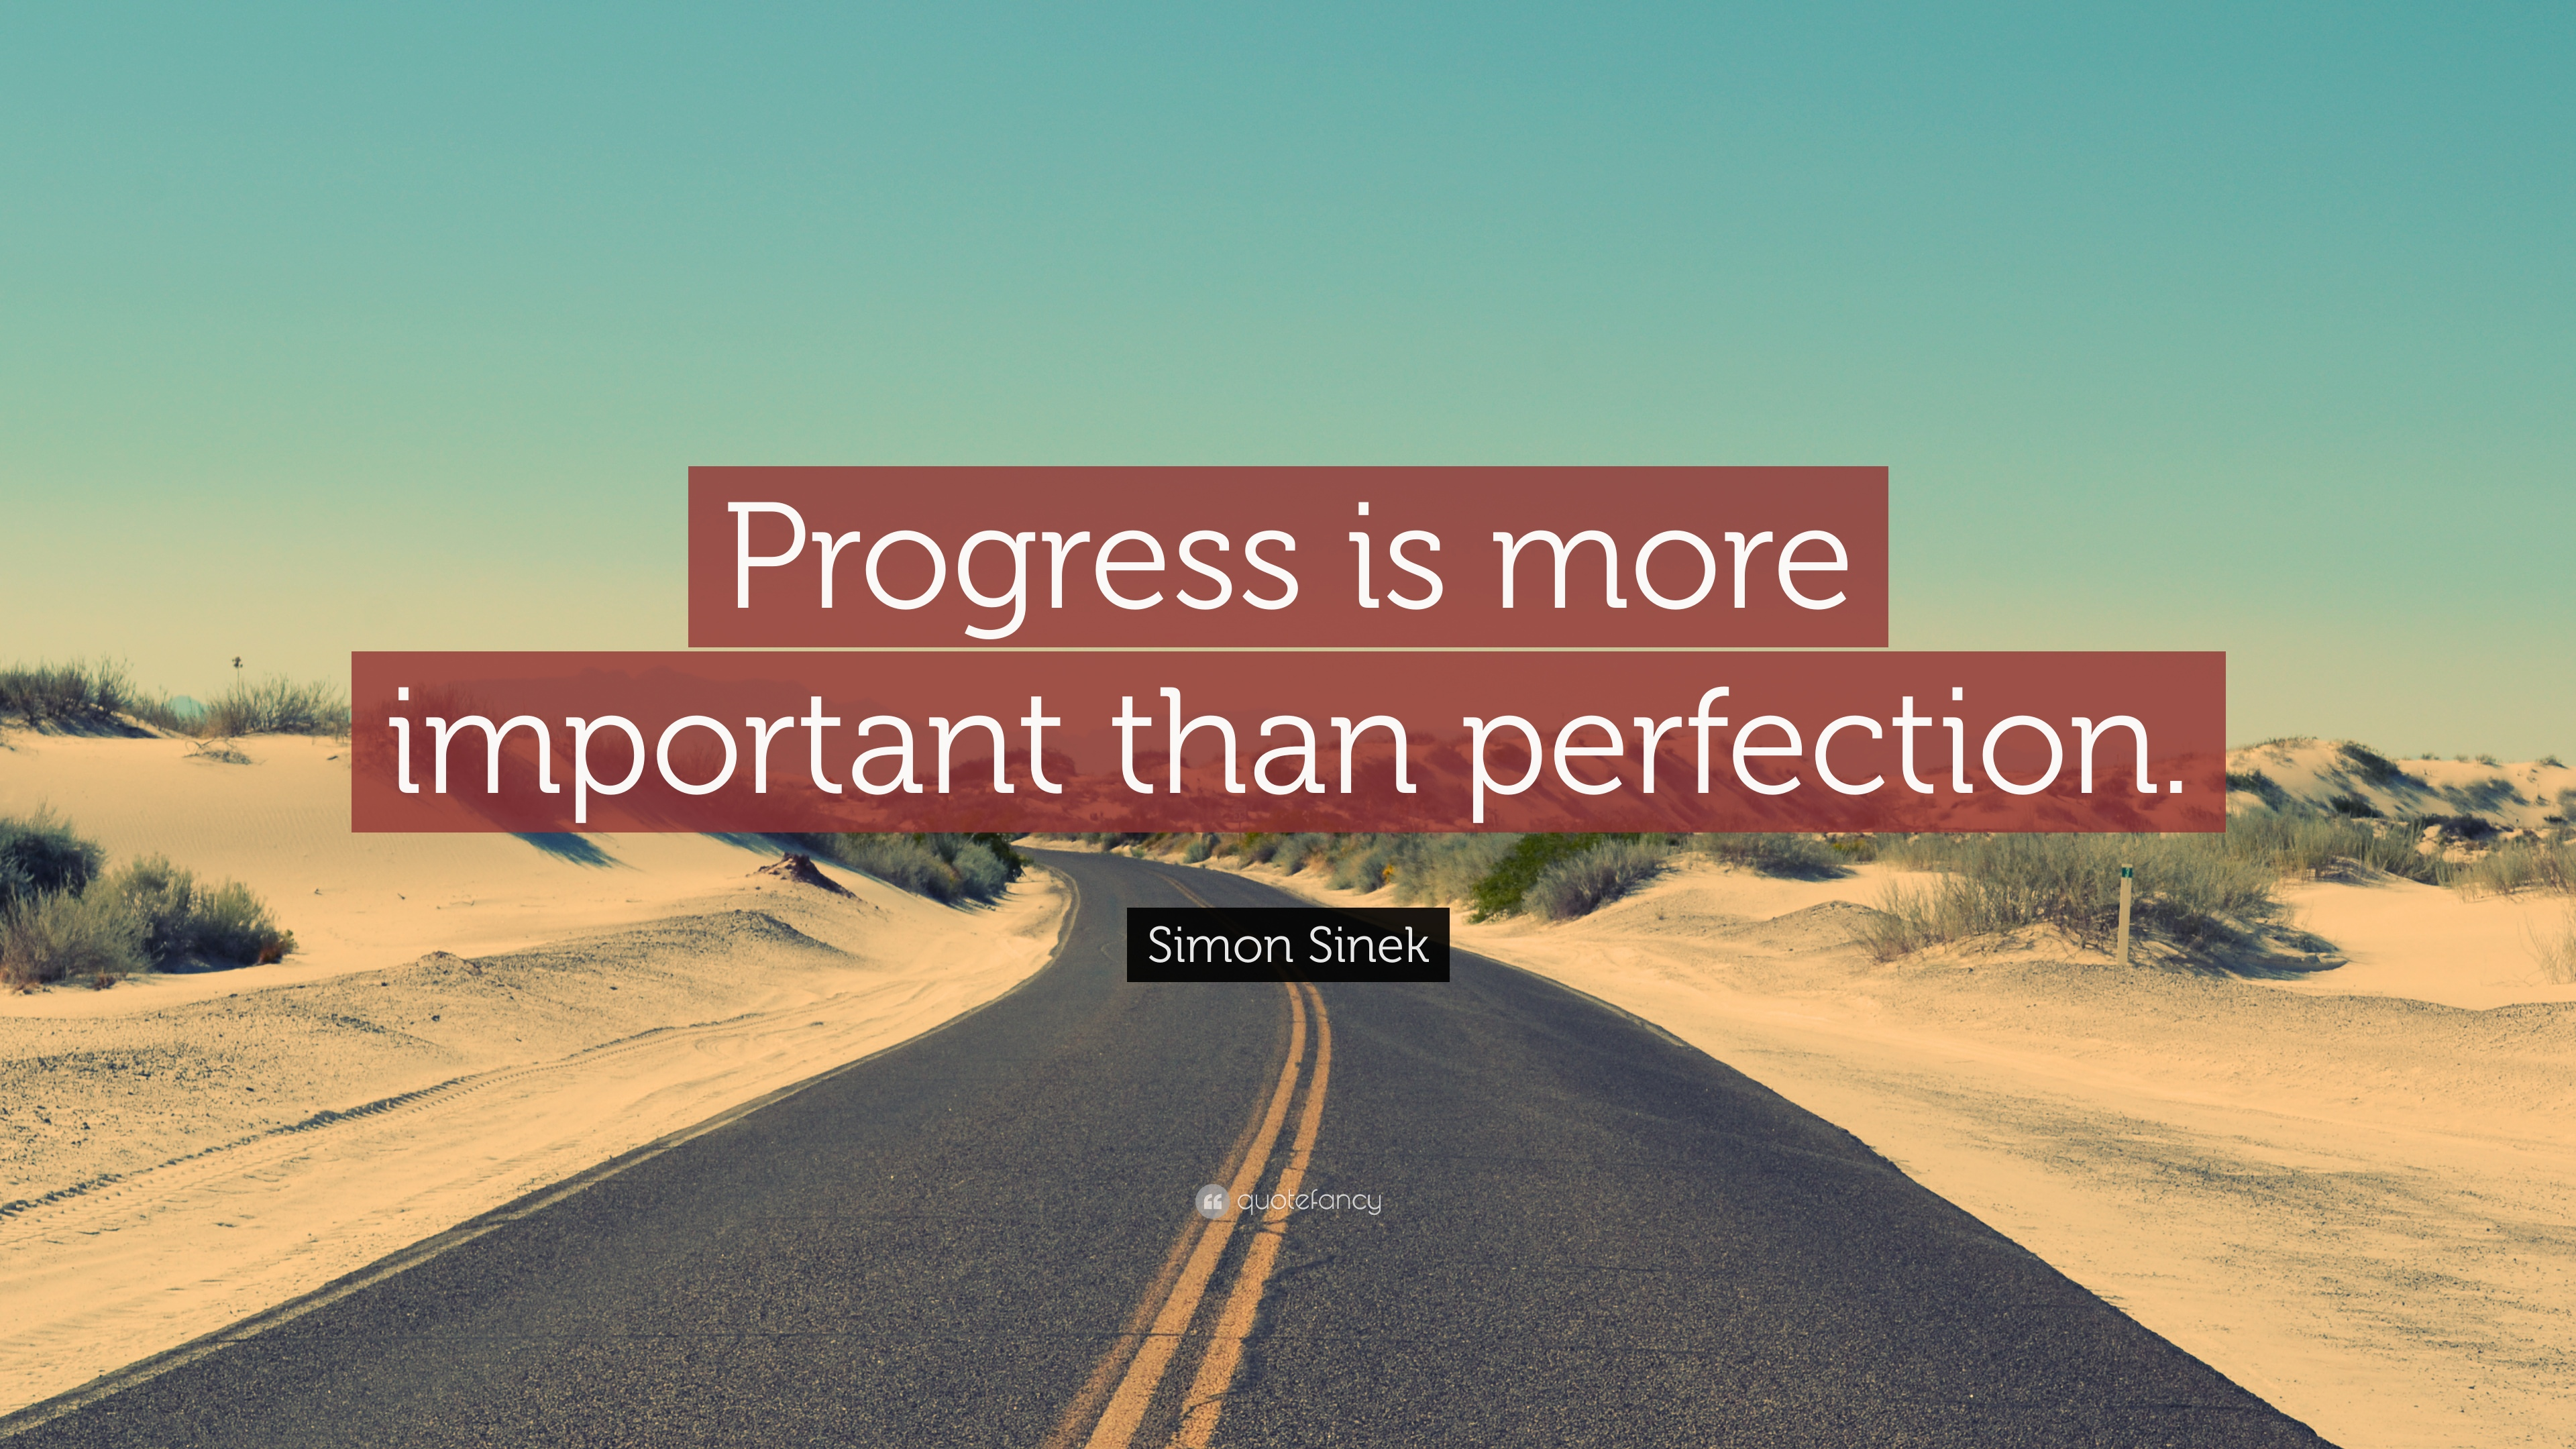 Persistence Motivational Quotes: Simon Sinek Quotes (100 Wallpapers)